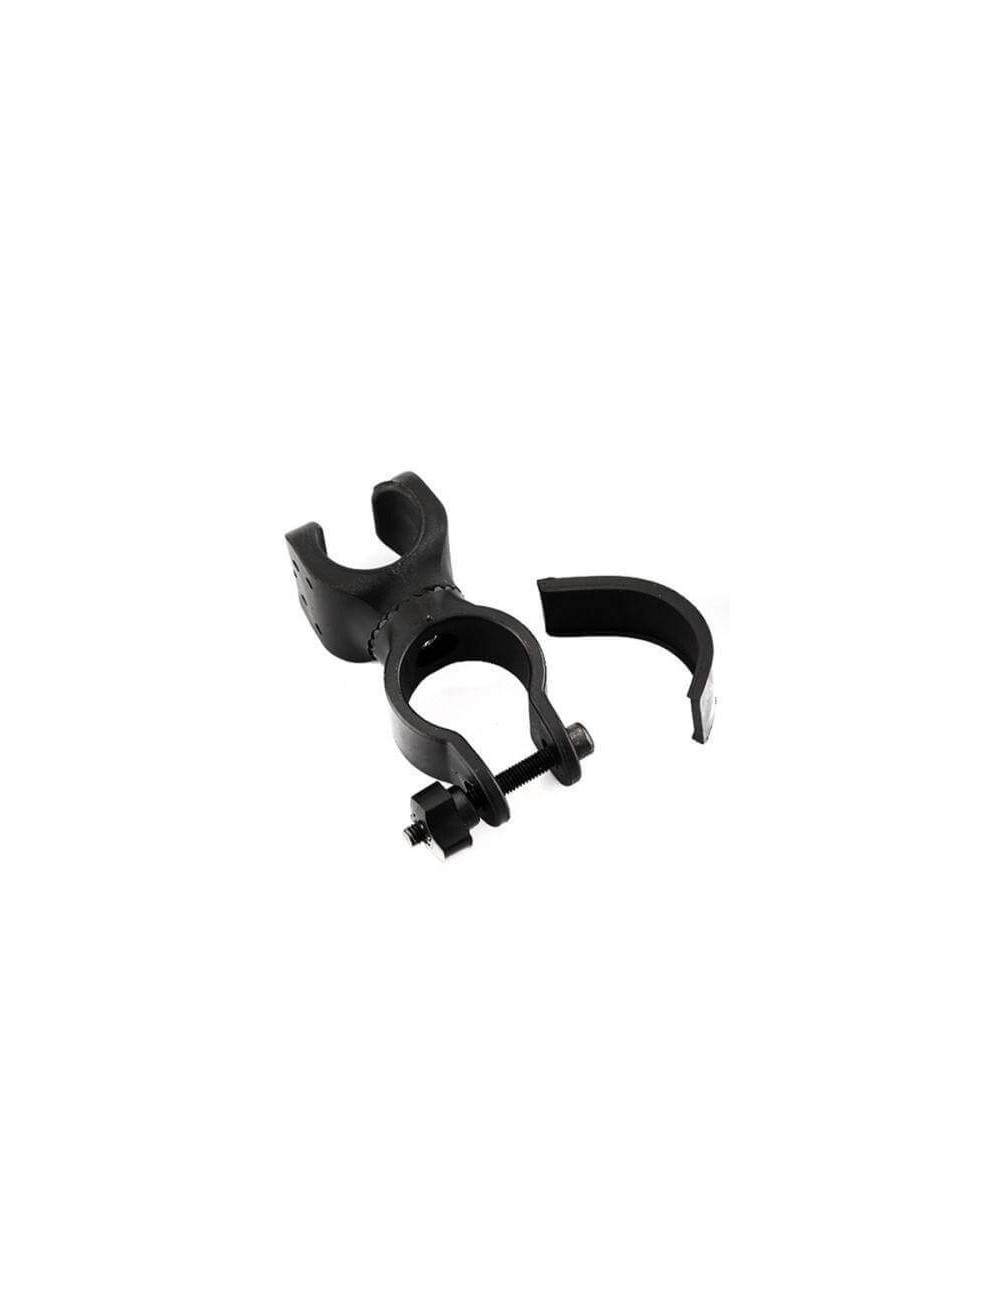 Fietsbevestiging Bike mount voor Cree Q5 mini zaklamp